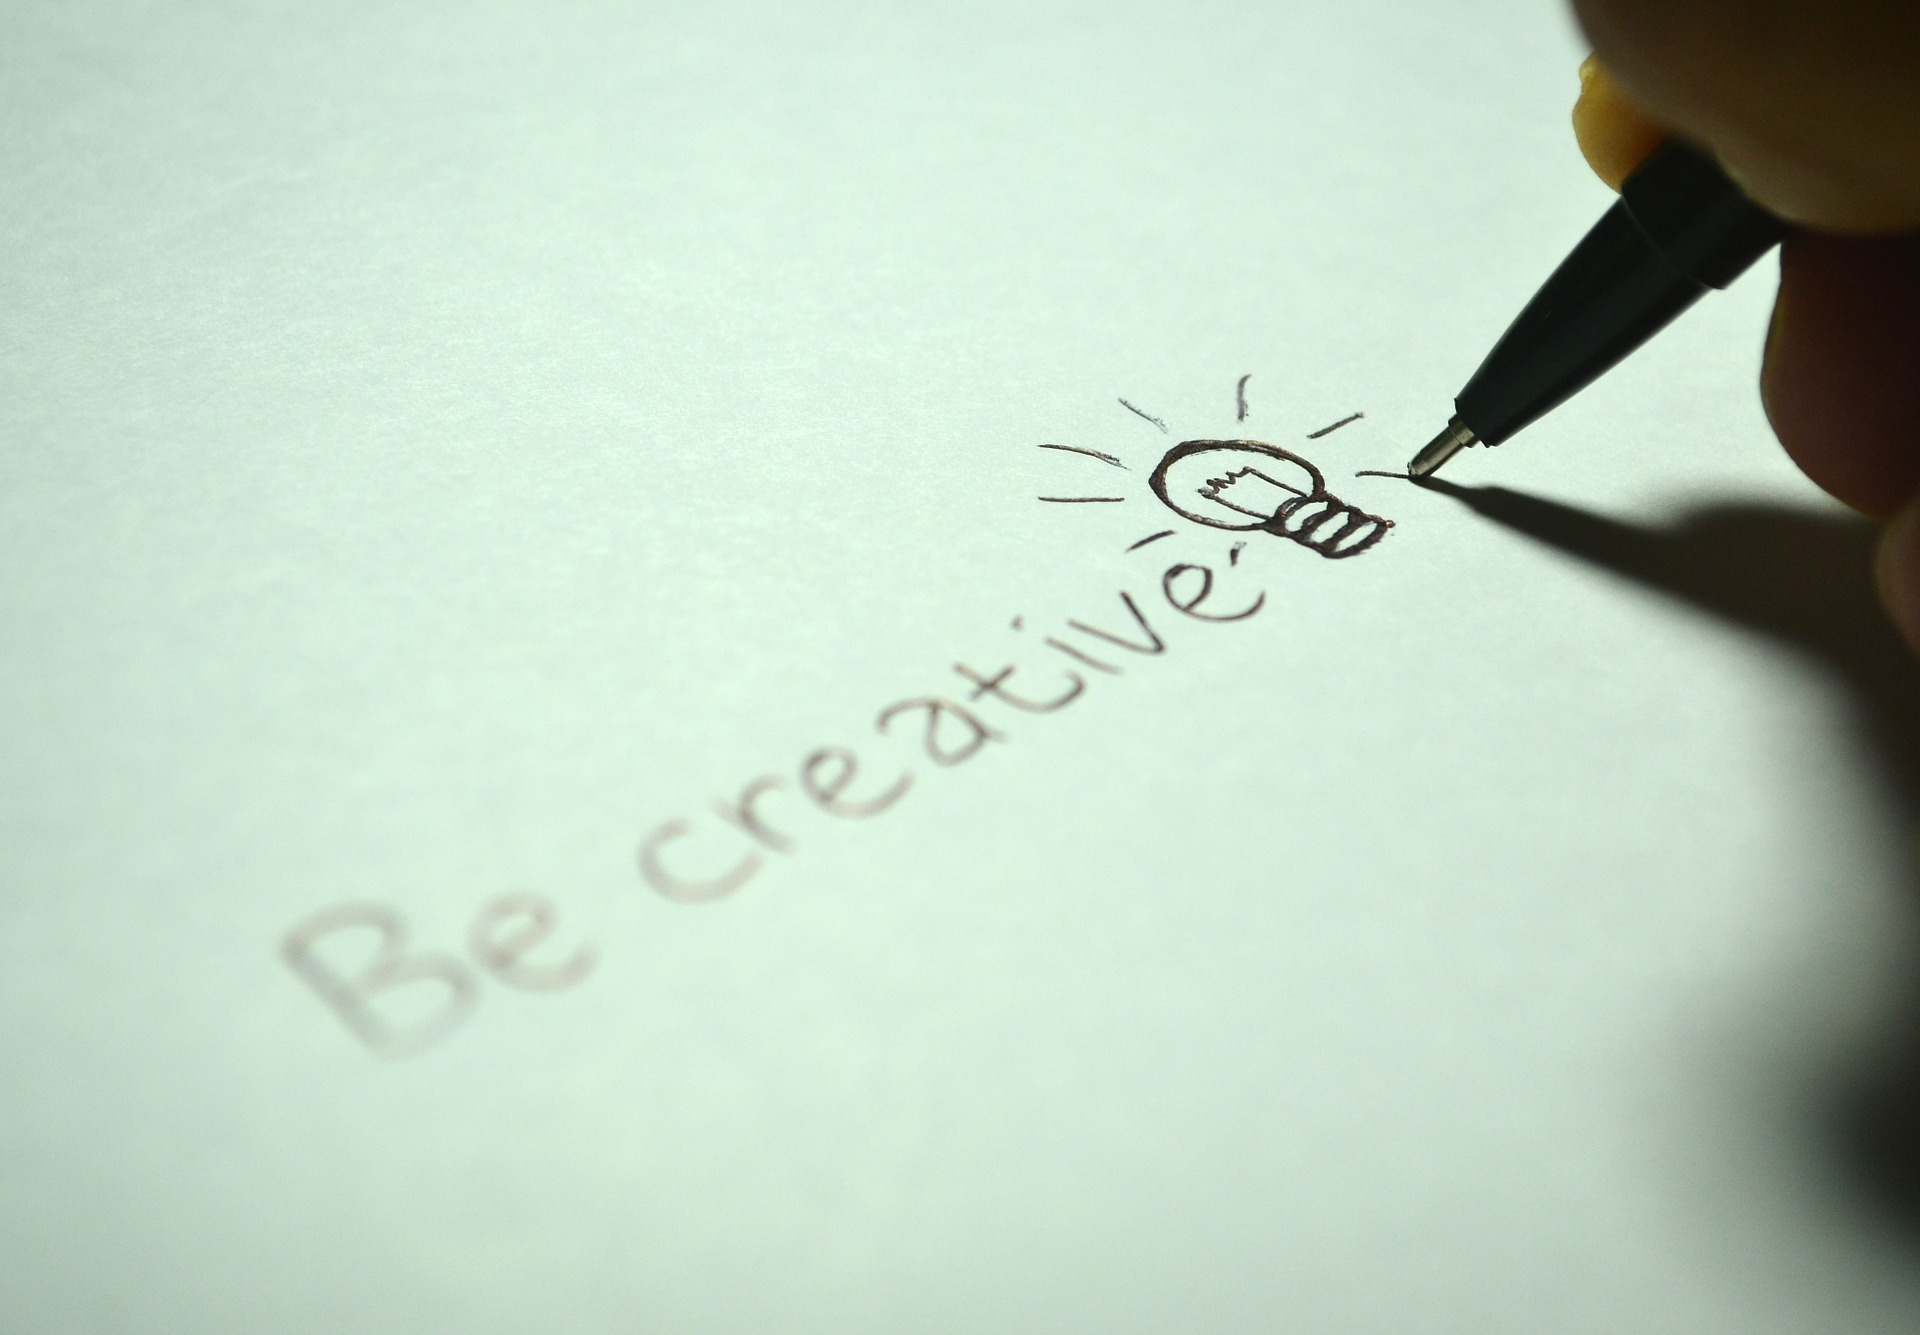 creativity is most important